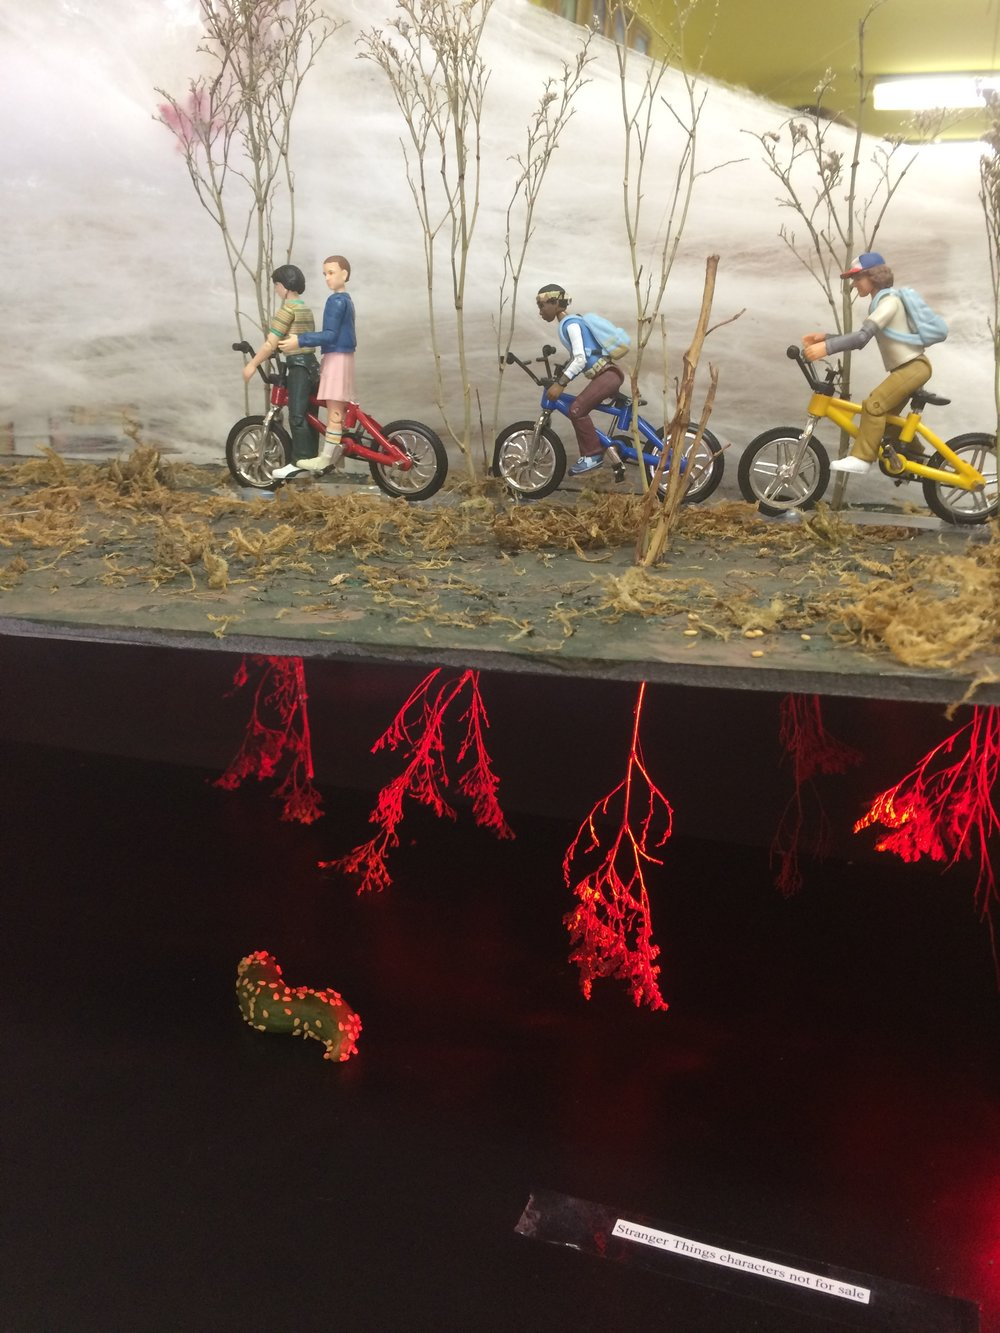 Stranger Things diorama at Archie McPhee's!